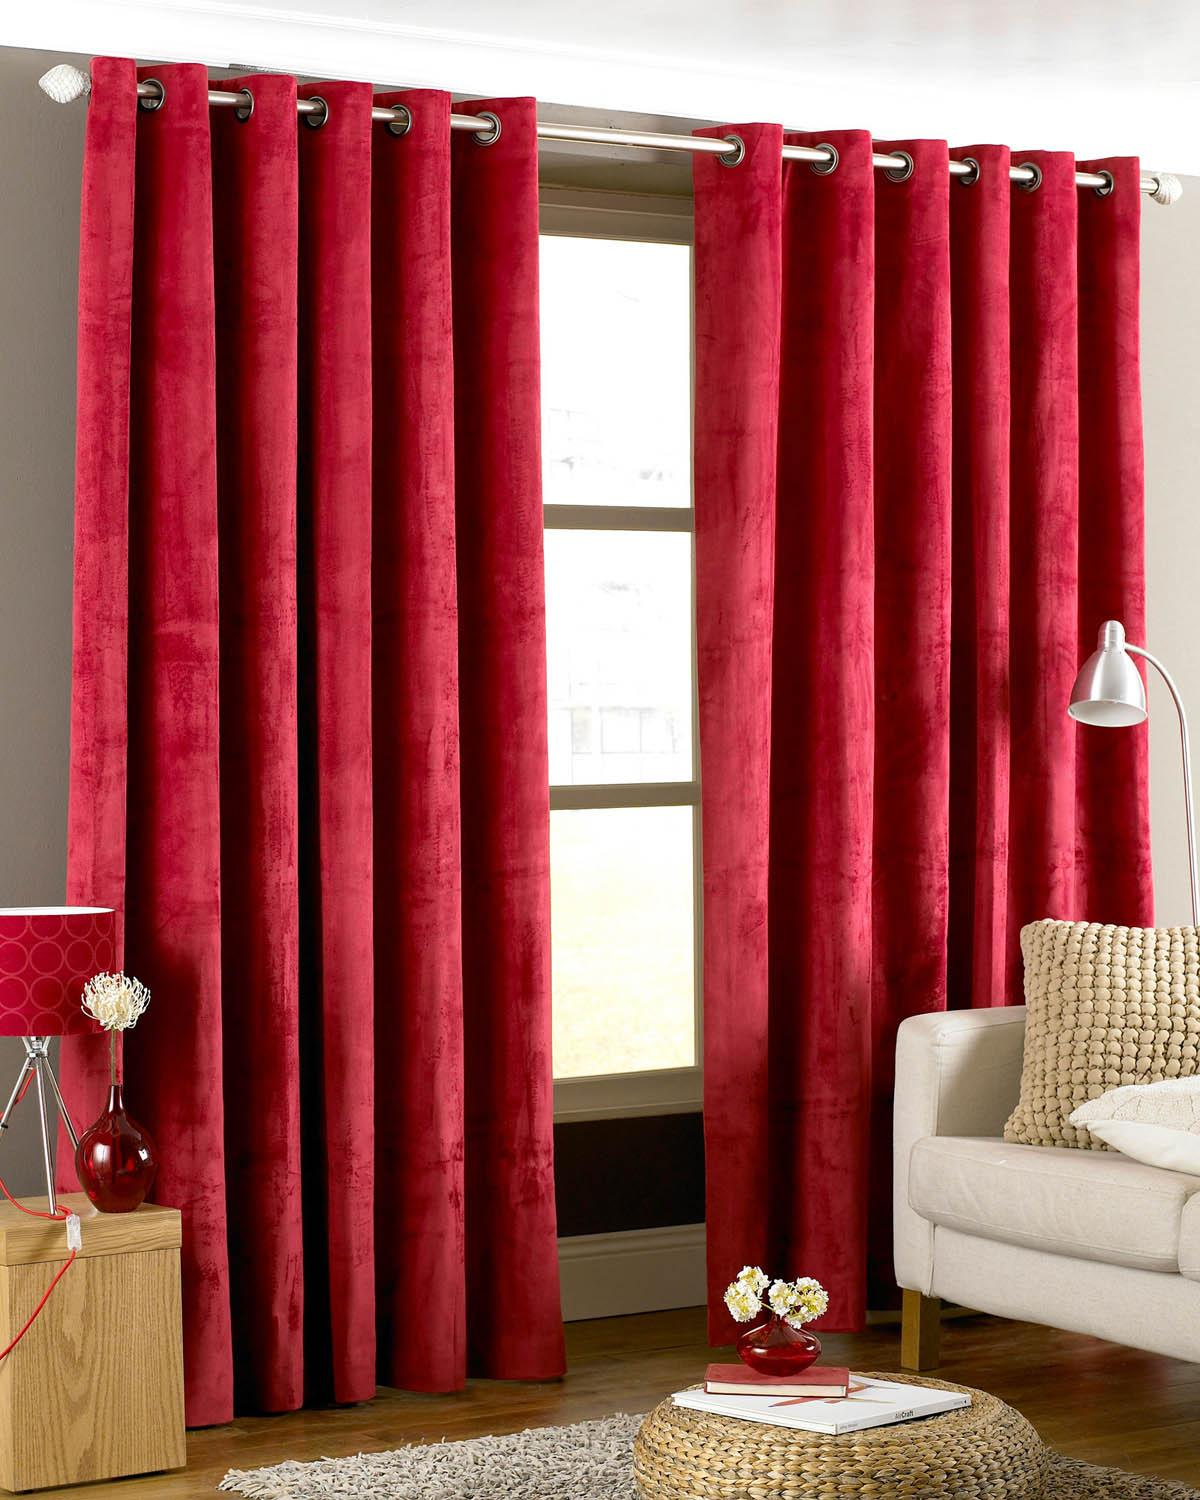 Cheap red curtains - Emperor Ready Made Eyelet Lined Curtains Red Luxury Ringtop